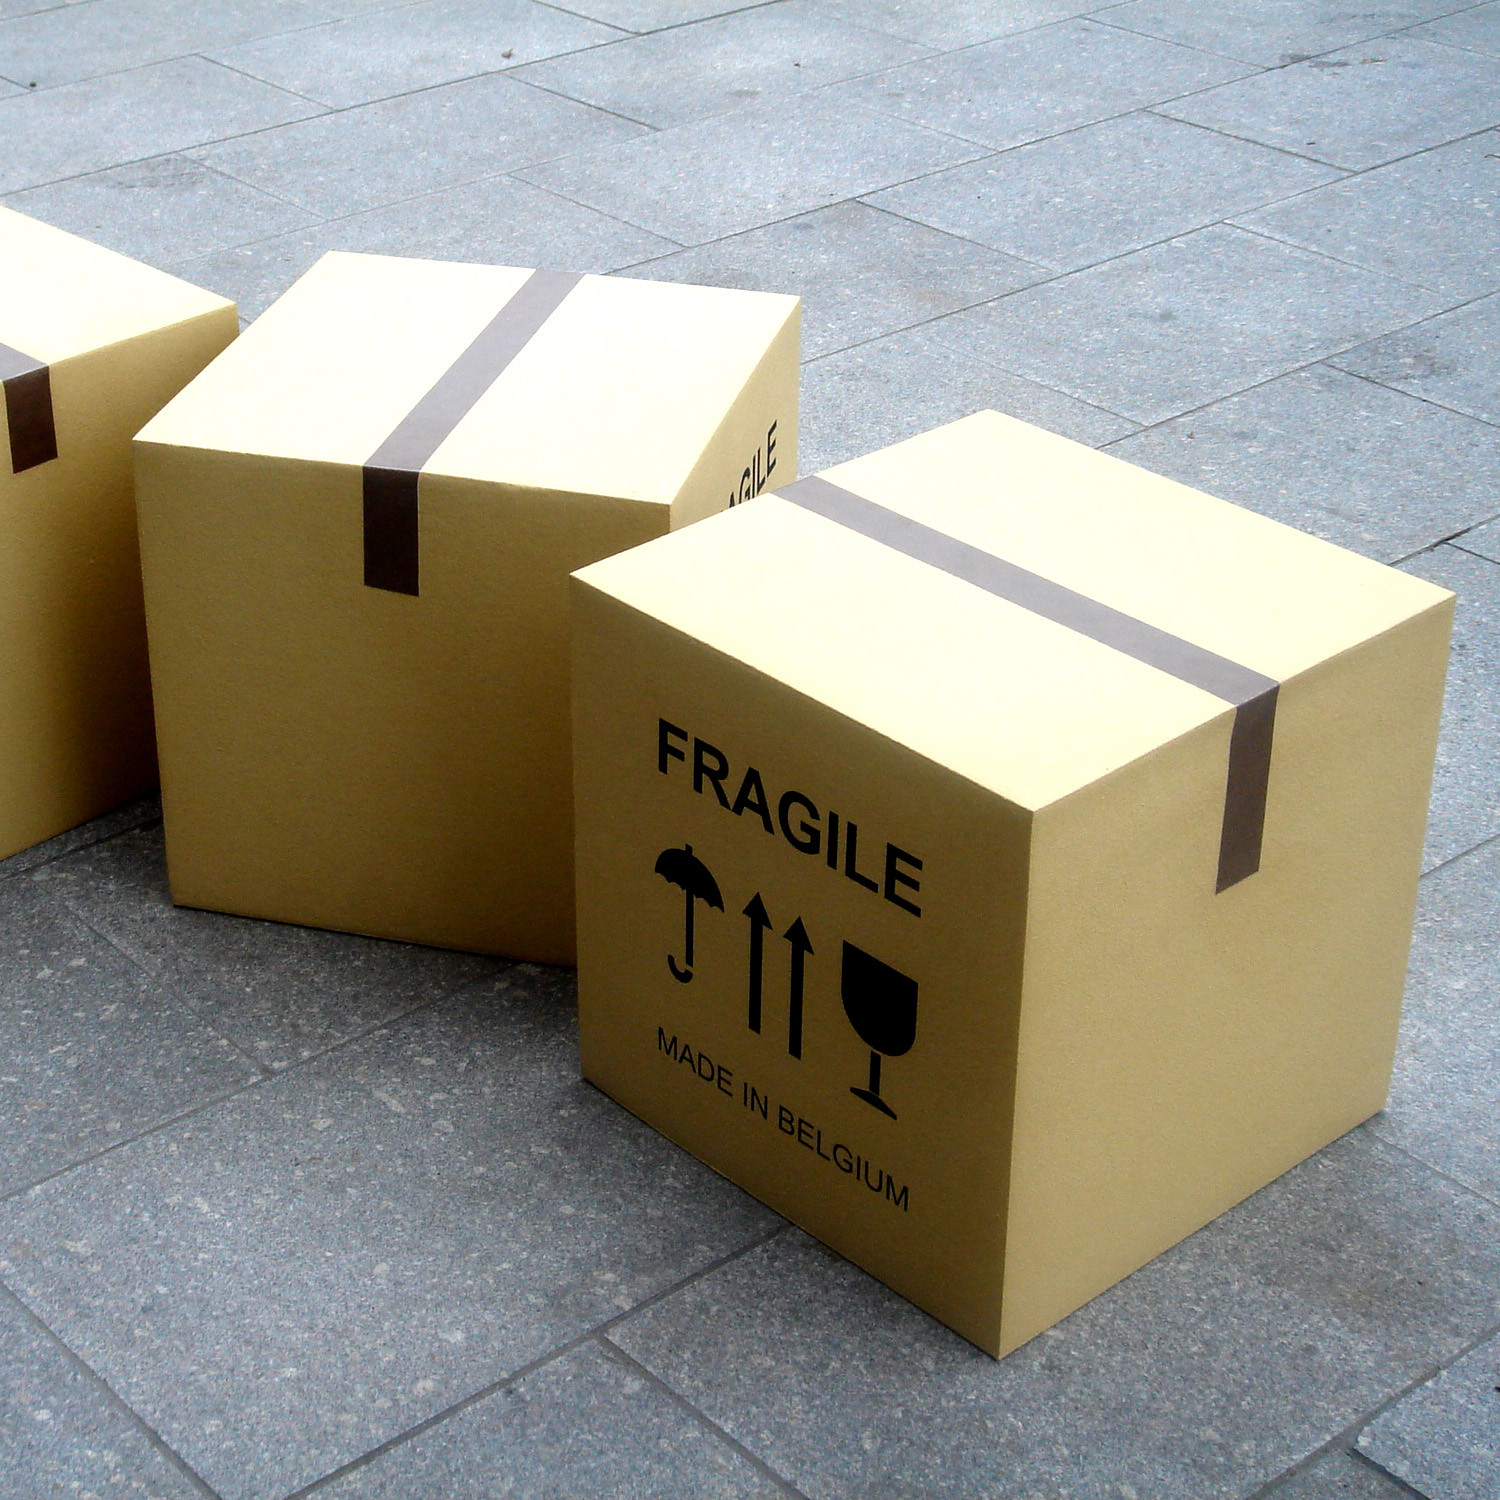 Fragile Box Contemporary Stools